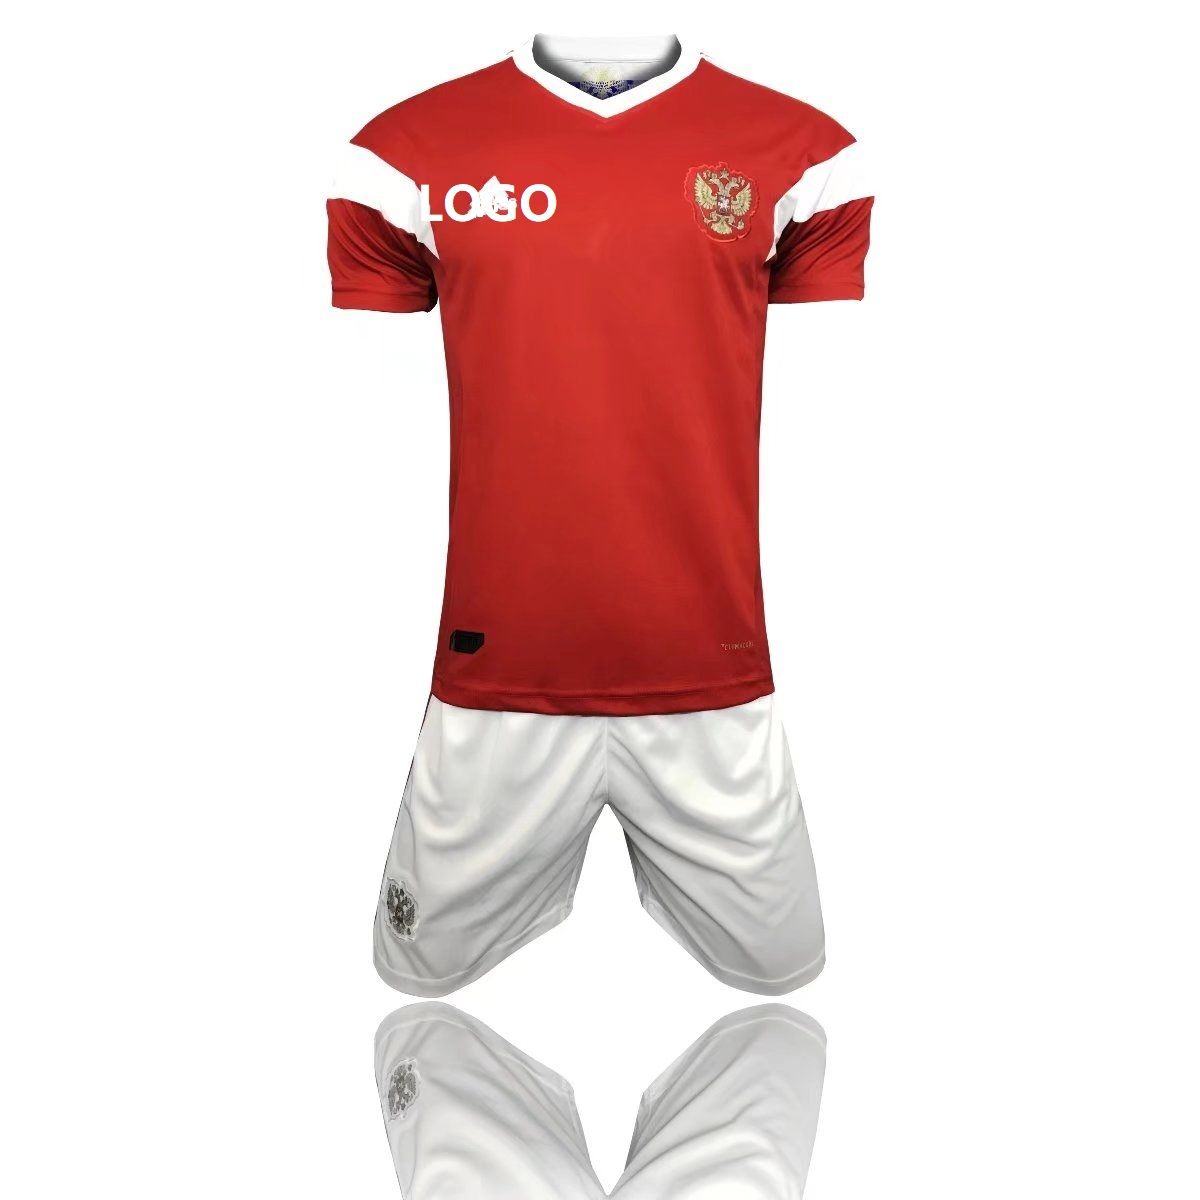 f493c57bf 2018 Russia World Cup Adult Russia Home Red white Soccer Uniform Men Football  Kits Custom Name Number